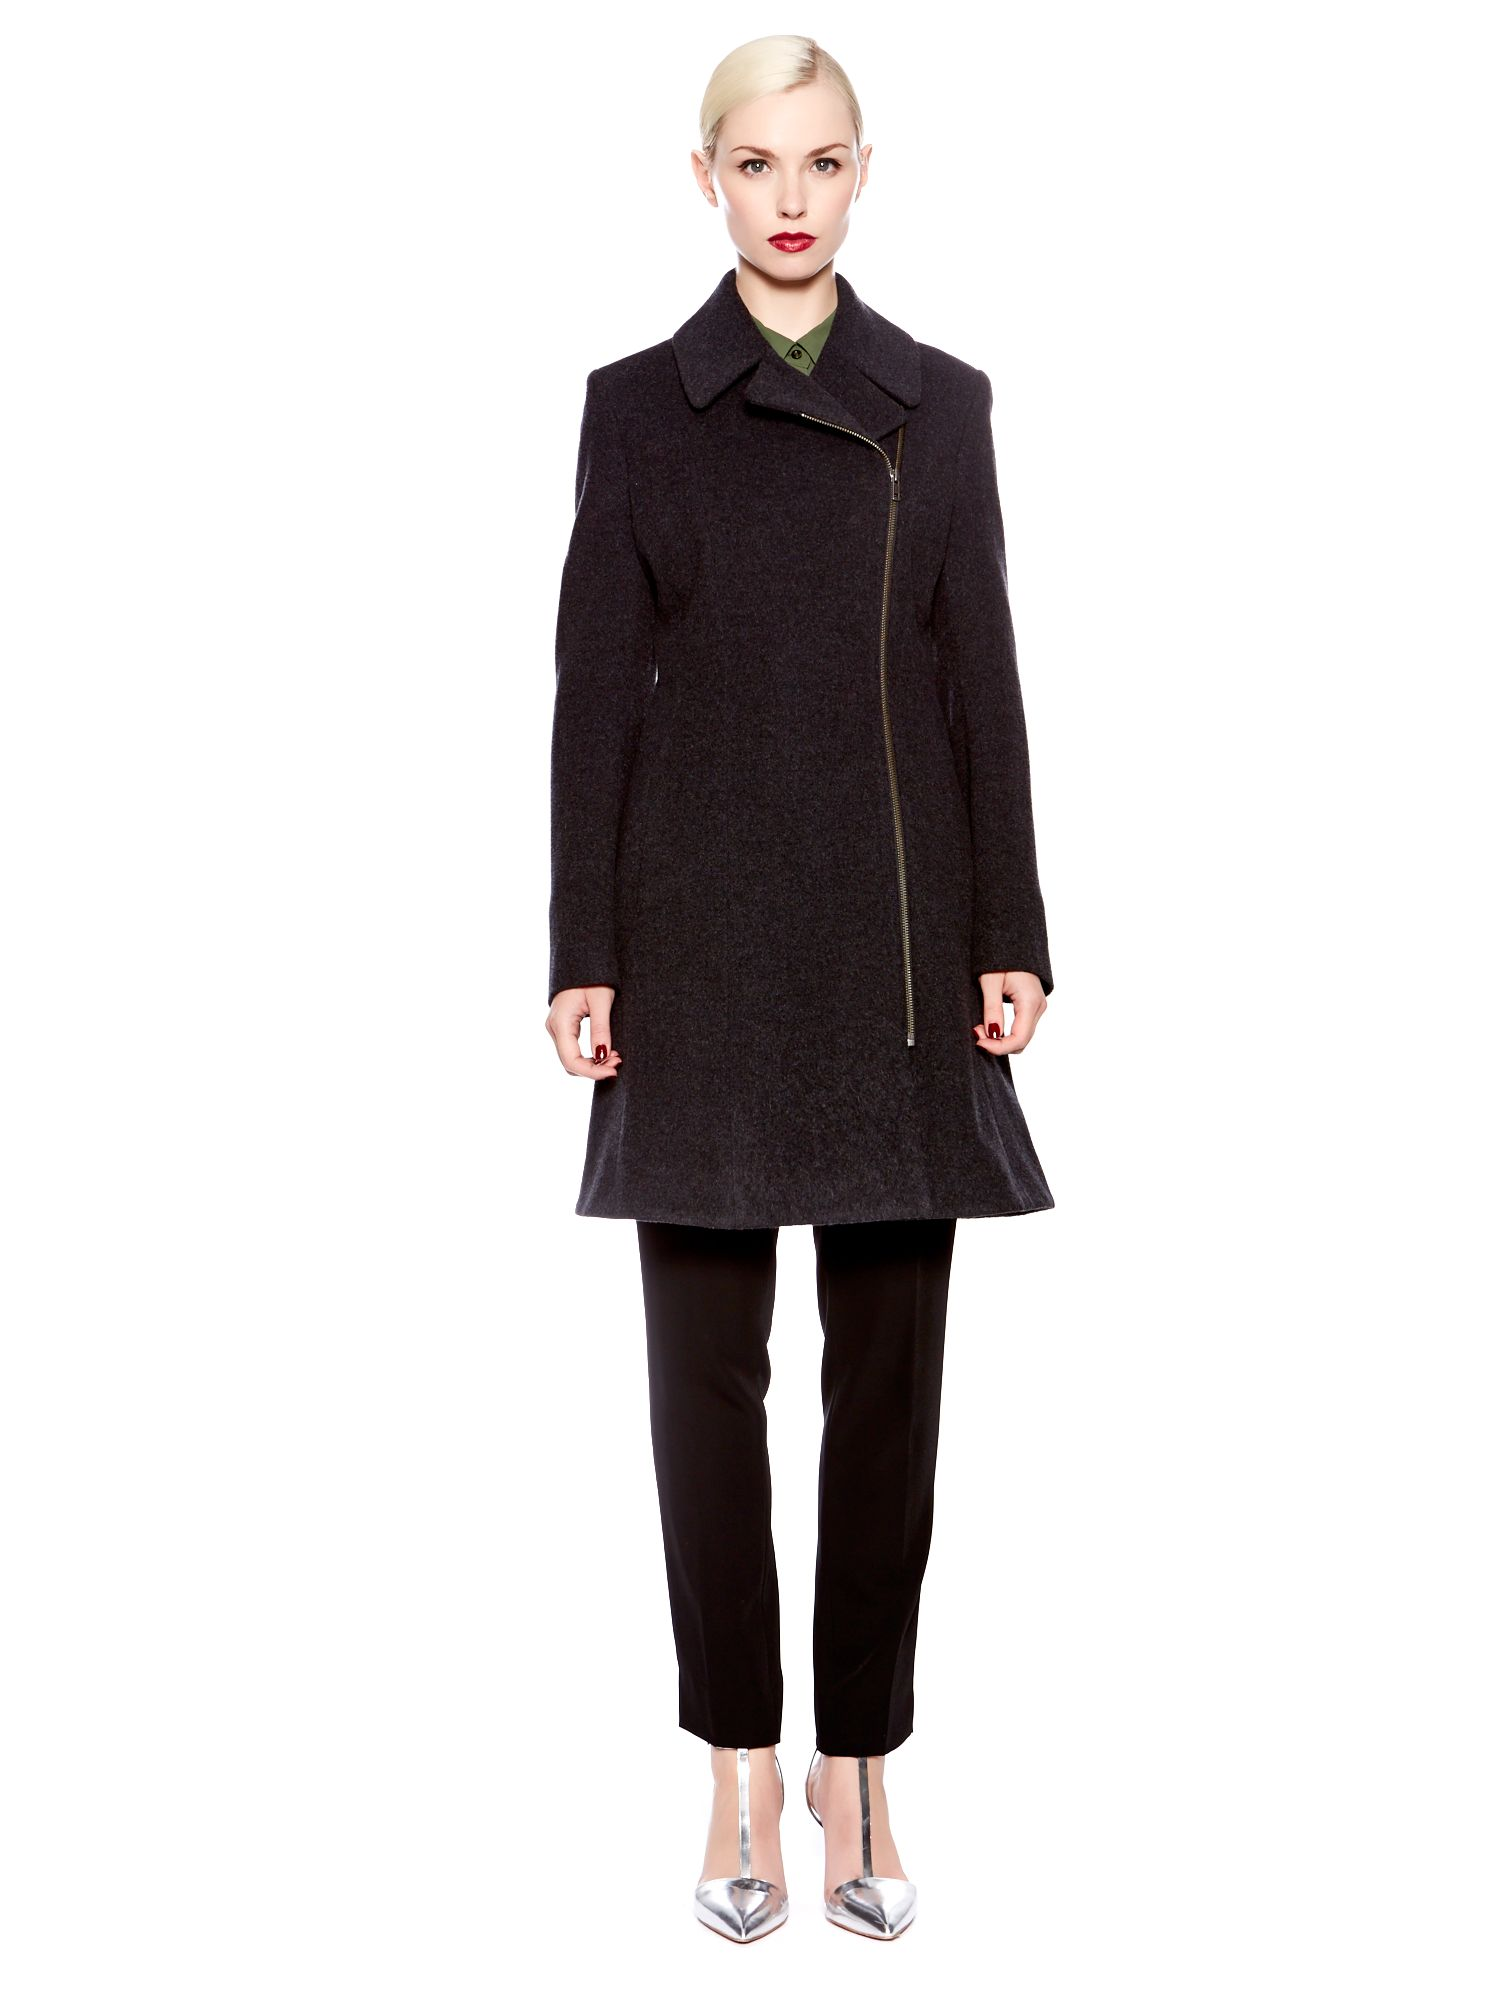 Assymetric fit and flare wool coat